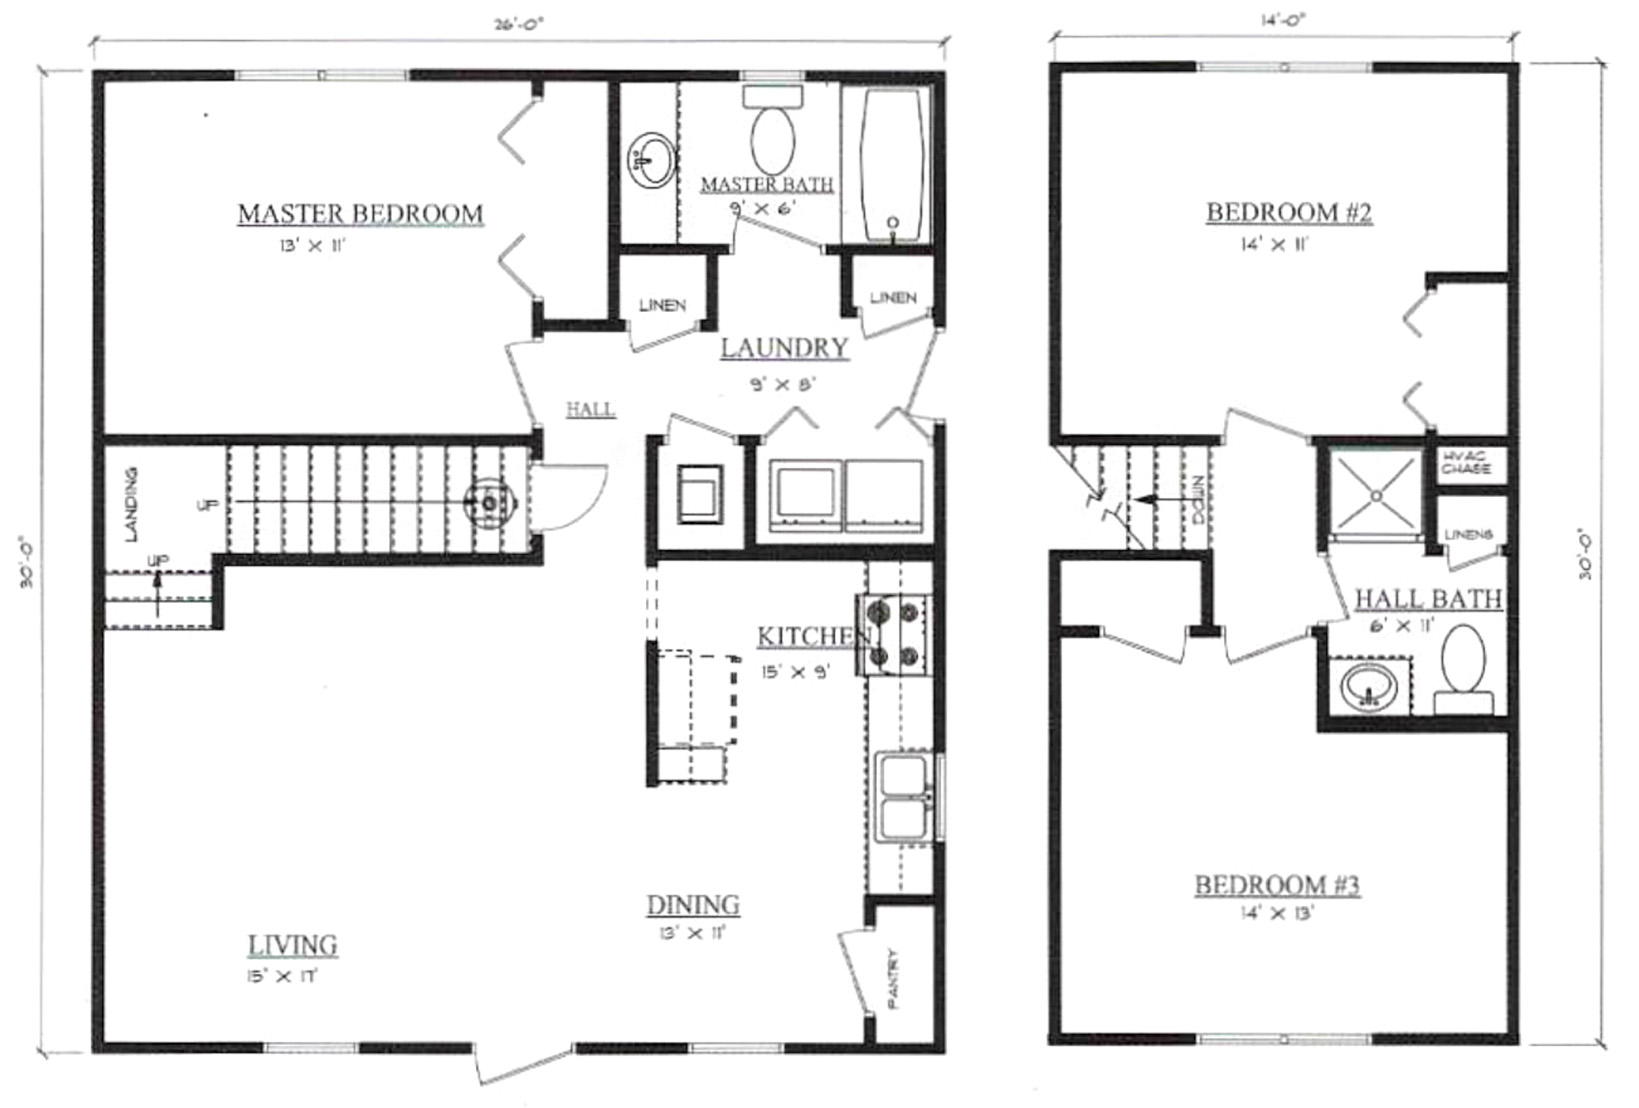 Plans for Farmview Pennyworth Homes Tallahassee Home Builder